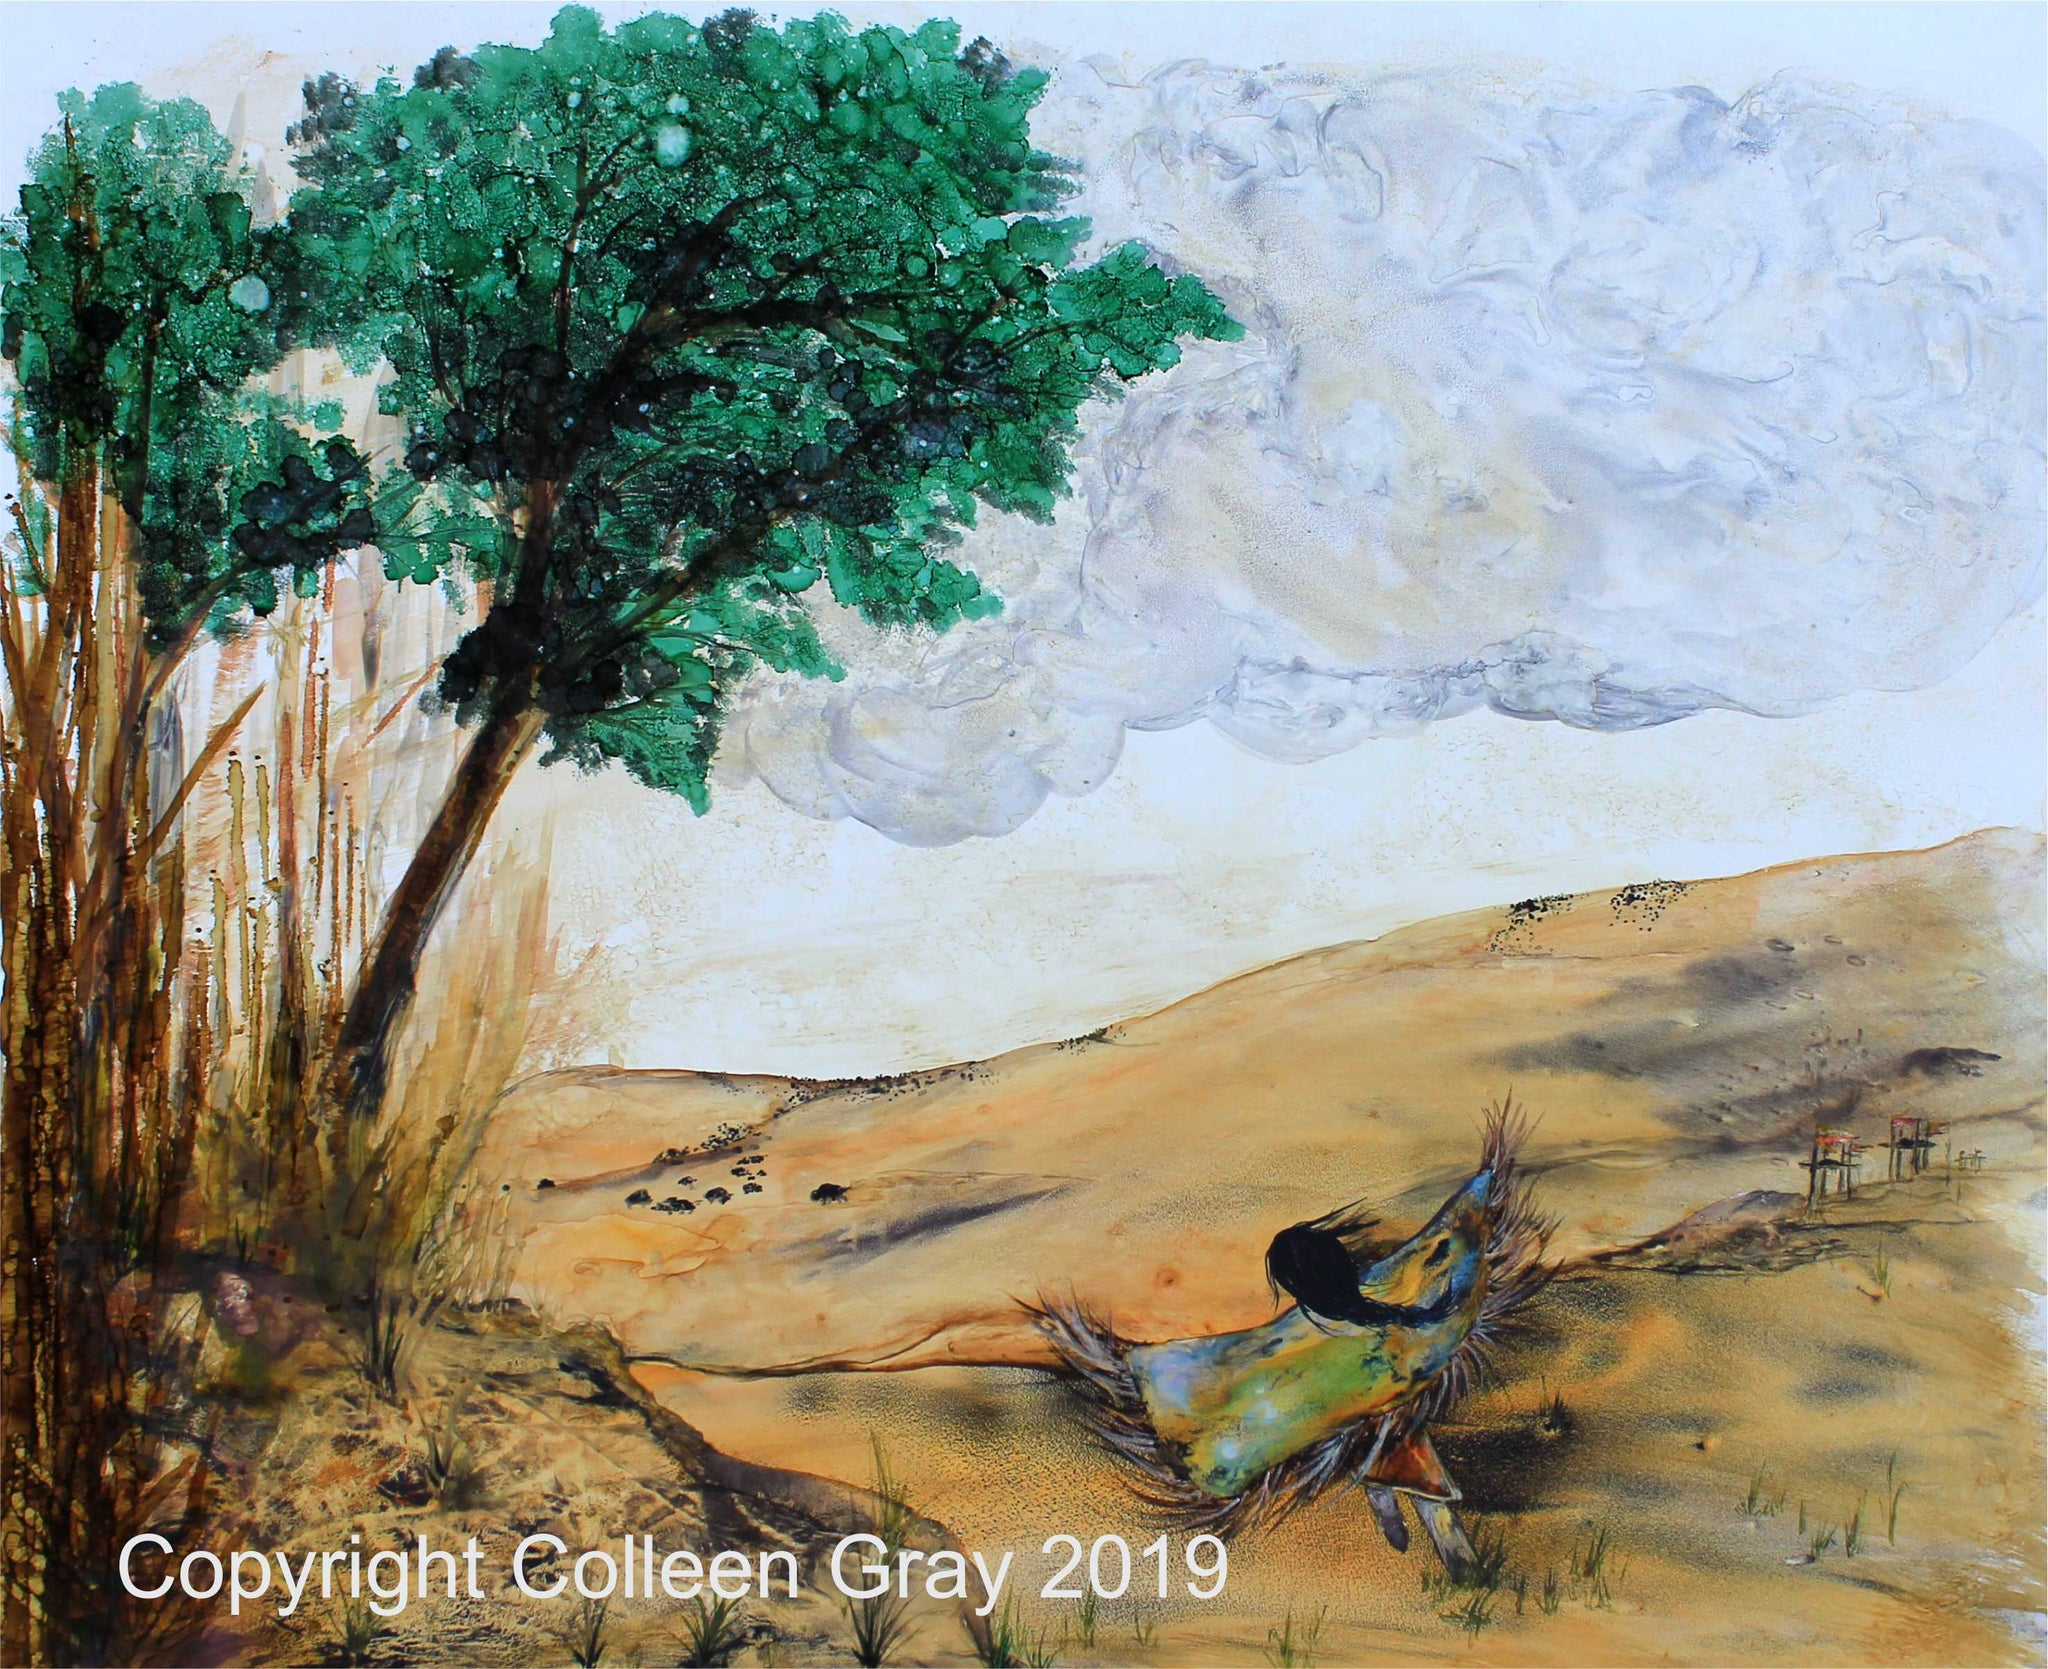 Image of Title: Dancing for the Earth 16x20 archival print by Metis Artist Colleen Gray Indigenous Canadian Art Work. Landscape, green trees, brown earth, blue sky, woman outstretched arms.For sale at https://artforaidshop.ca